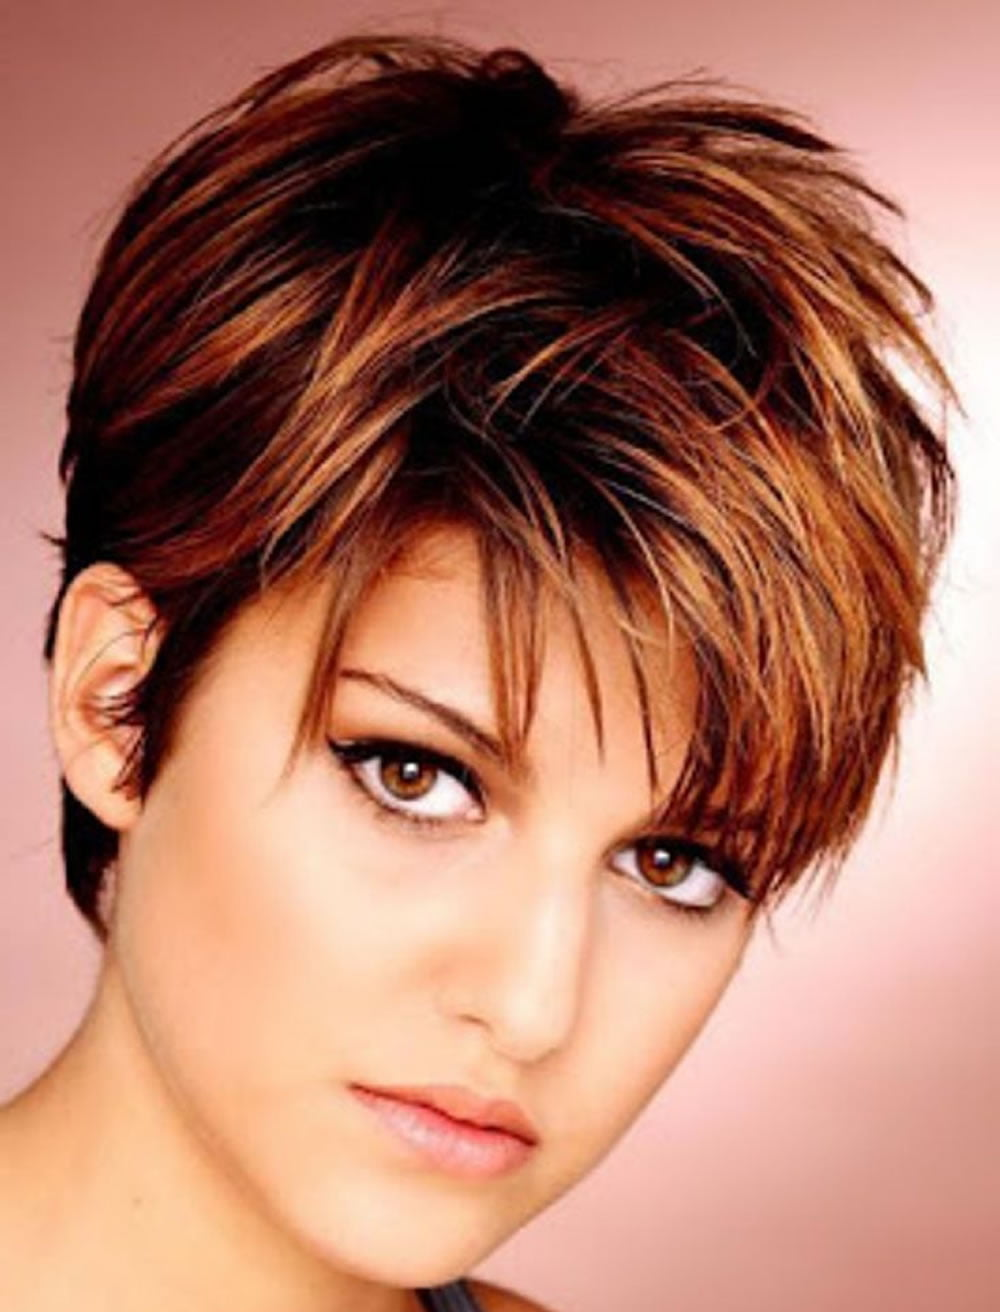 Haircuts for round face thin hair ideas for 2018 short haircuts for round face thin hair ideas for 2018 urmus Gallery